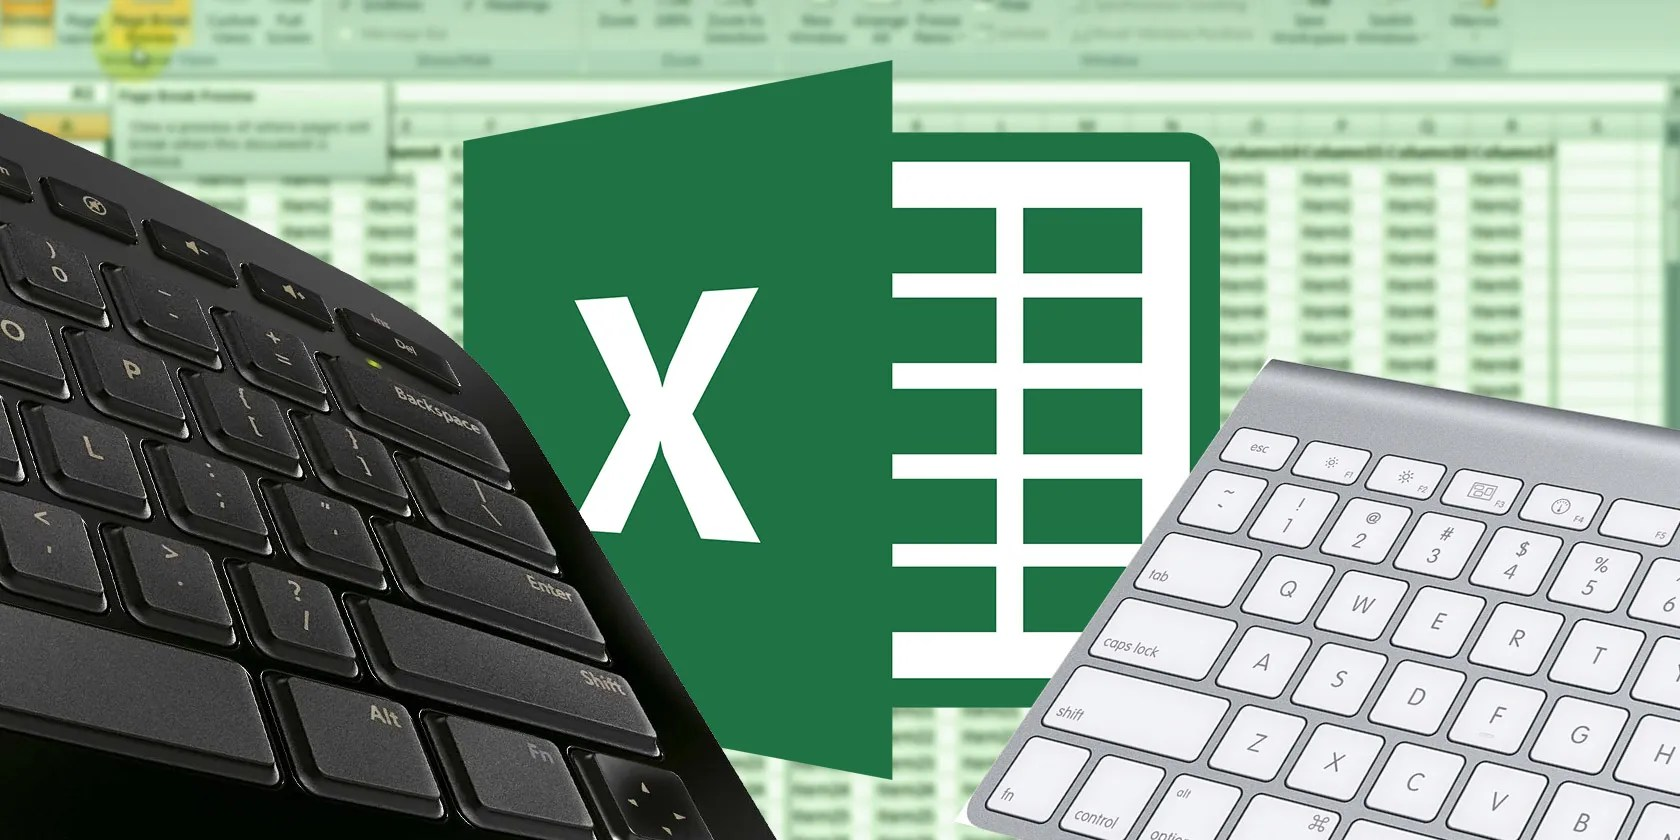 35 Everyday Microsoft Excel Keyboard Shortcuts For Windows